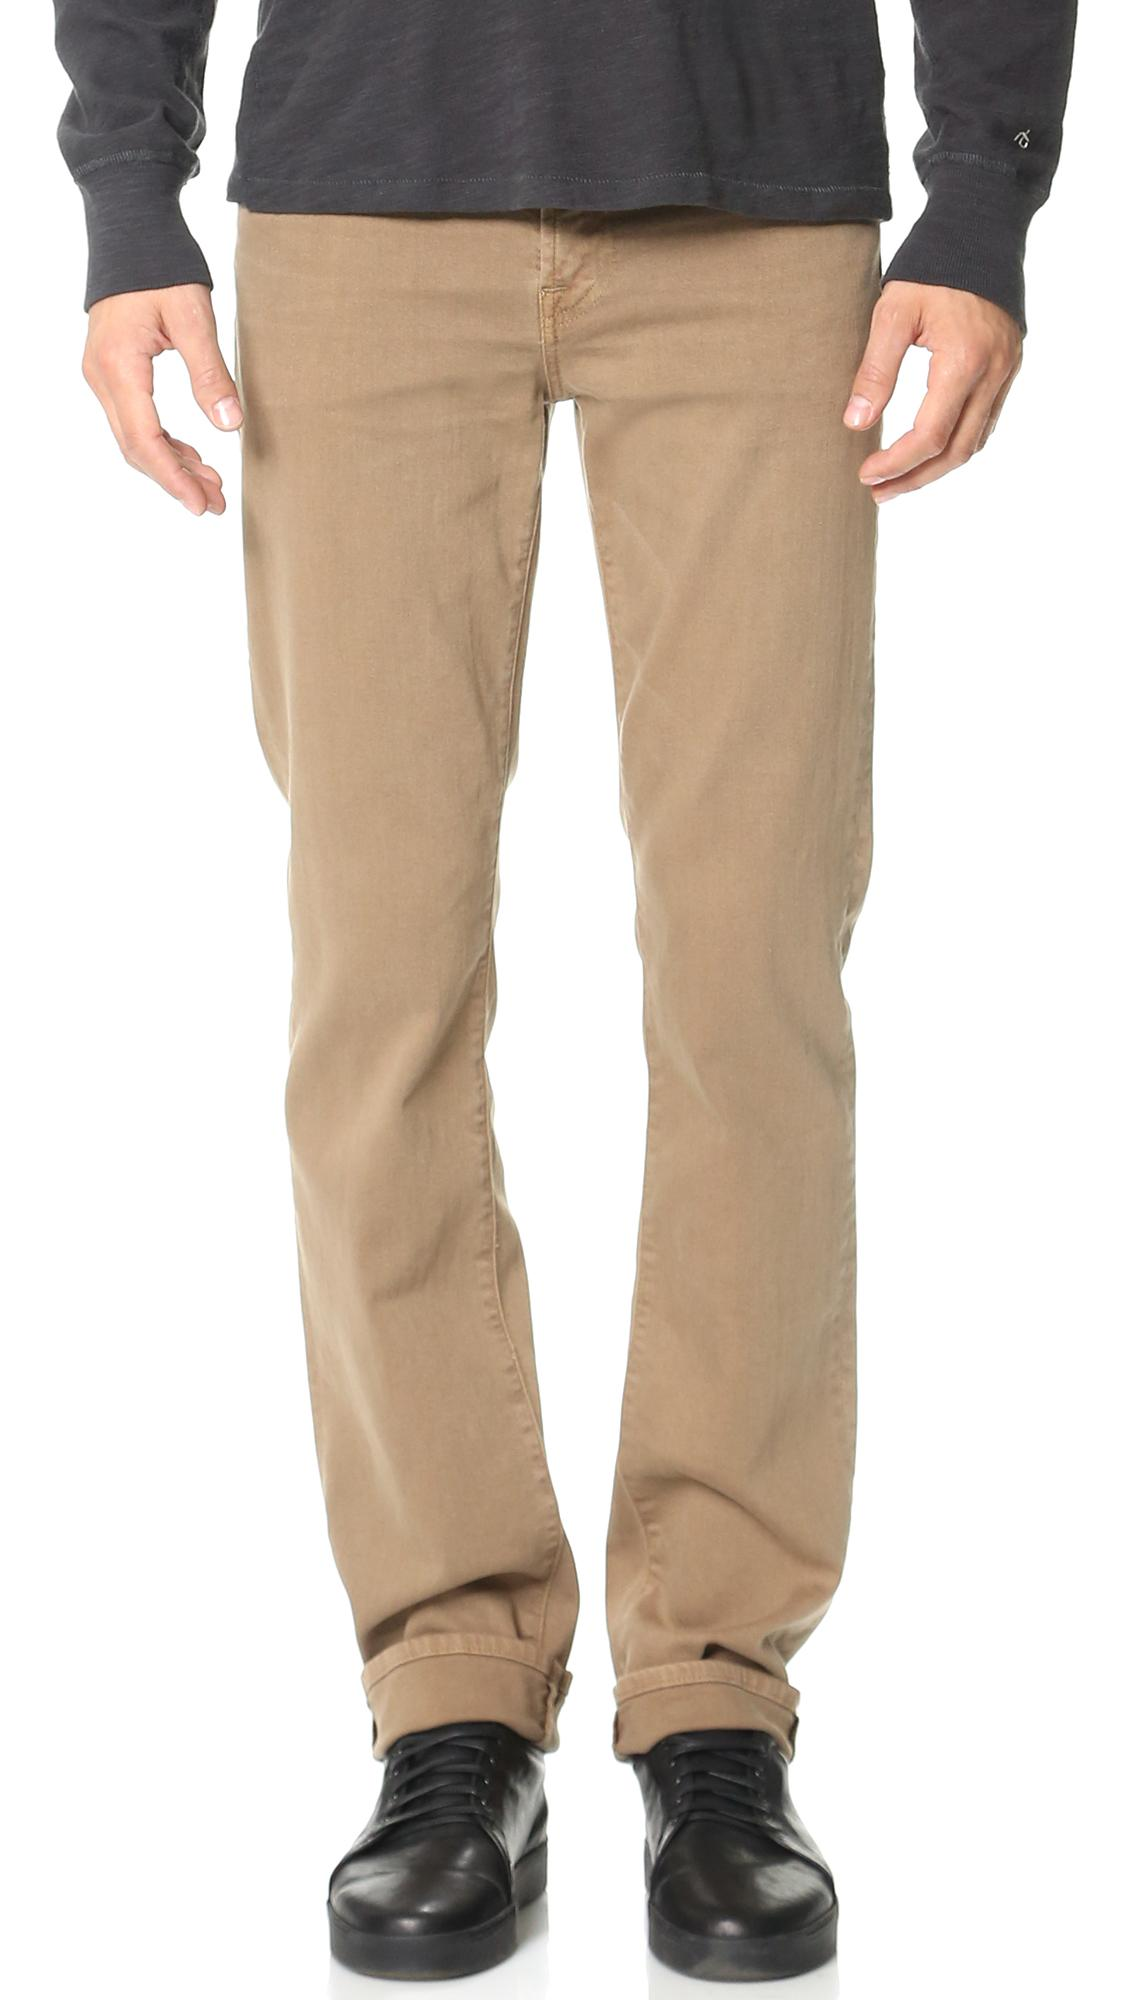 7 For All Mankind Luxe Performance Slimmy Jeans In Sand